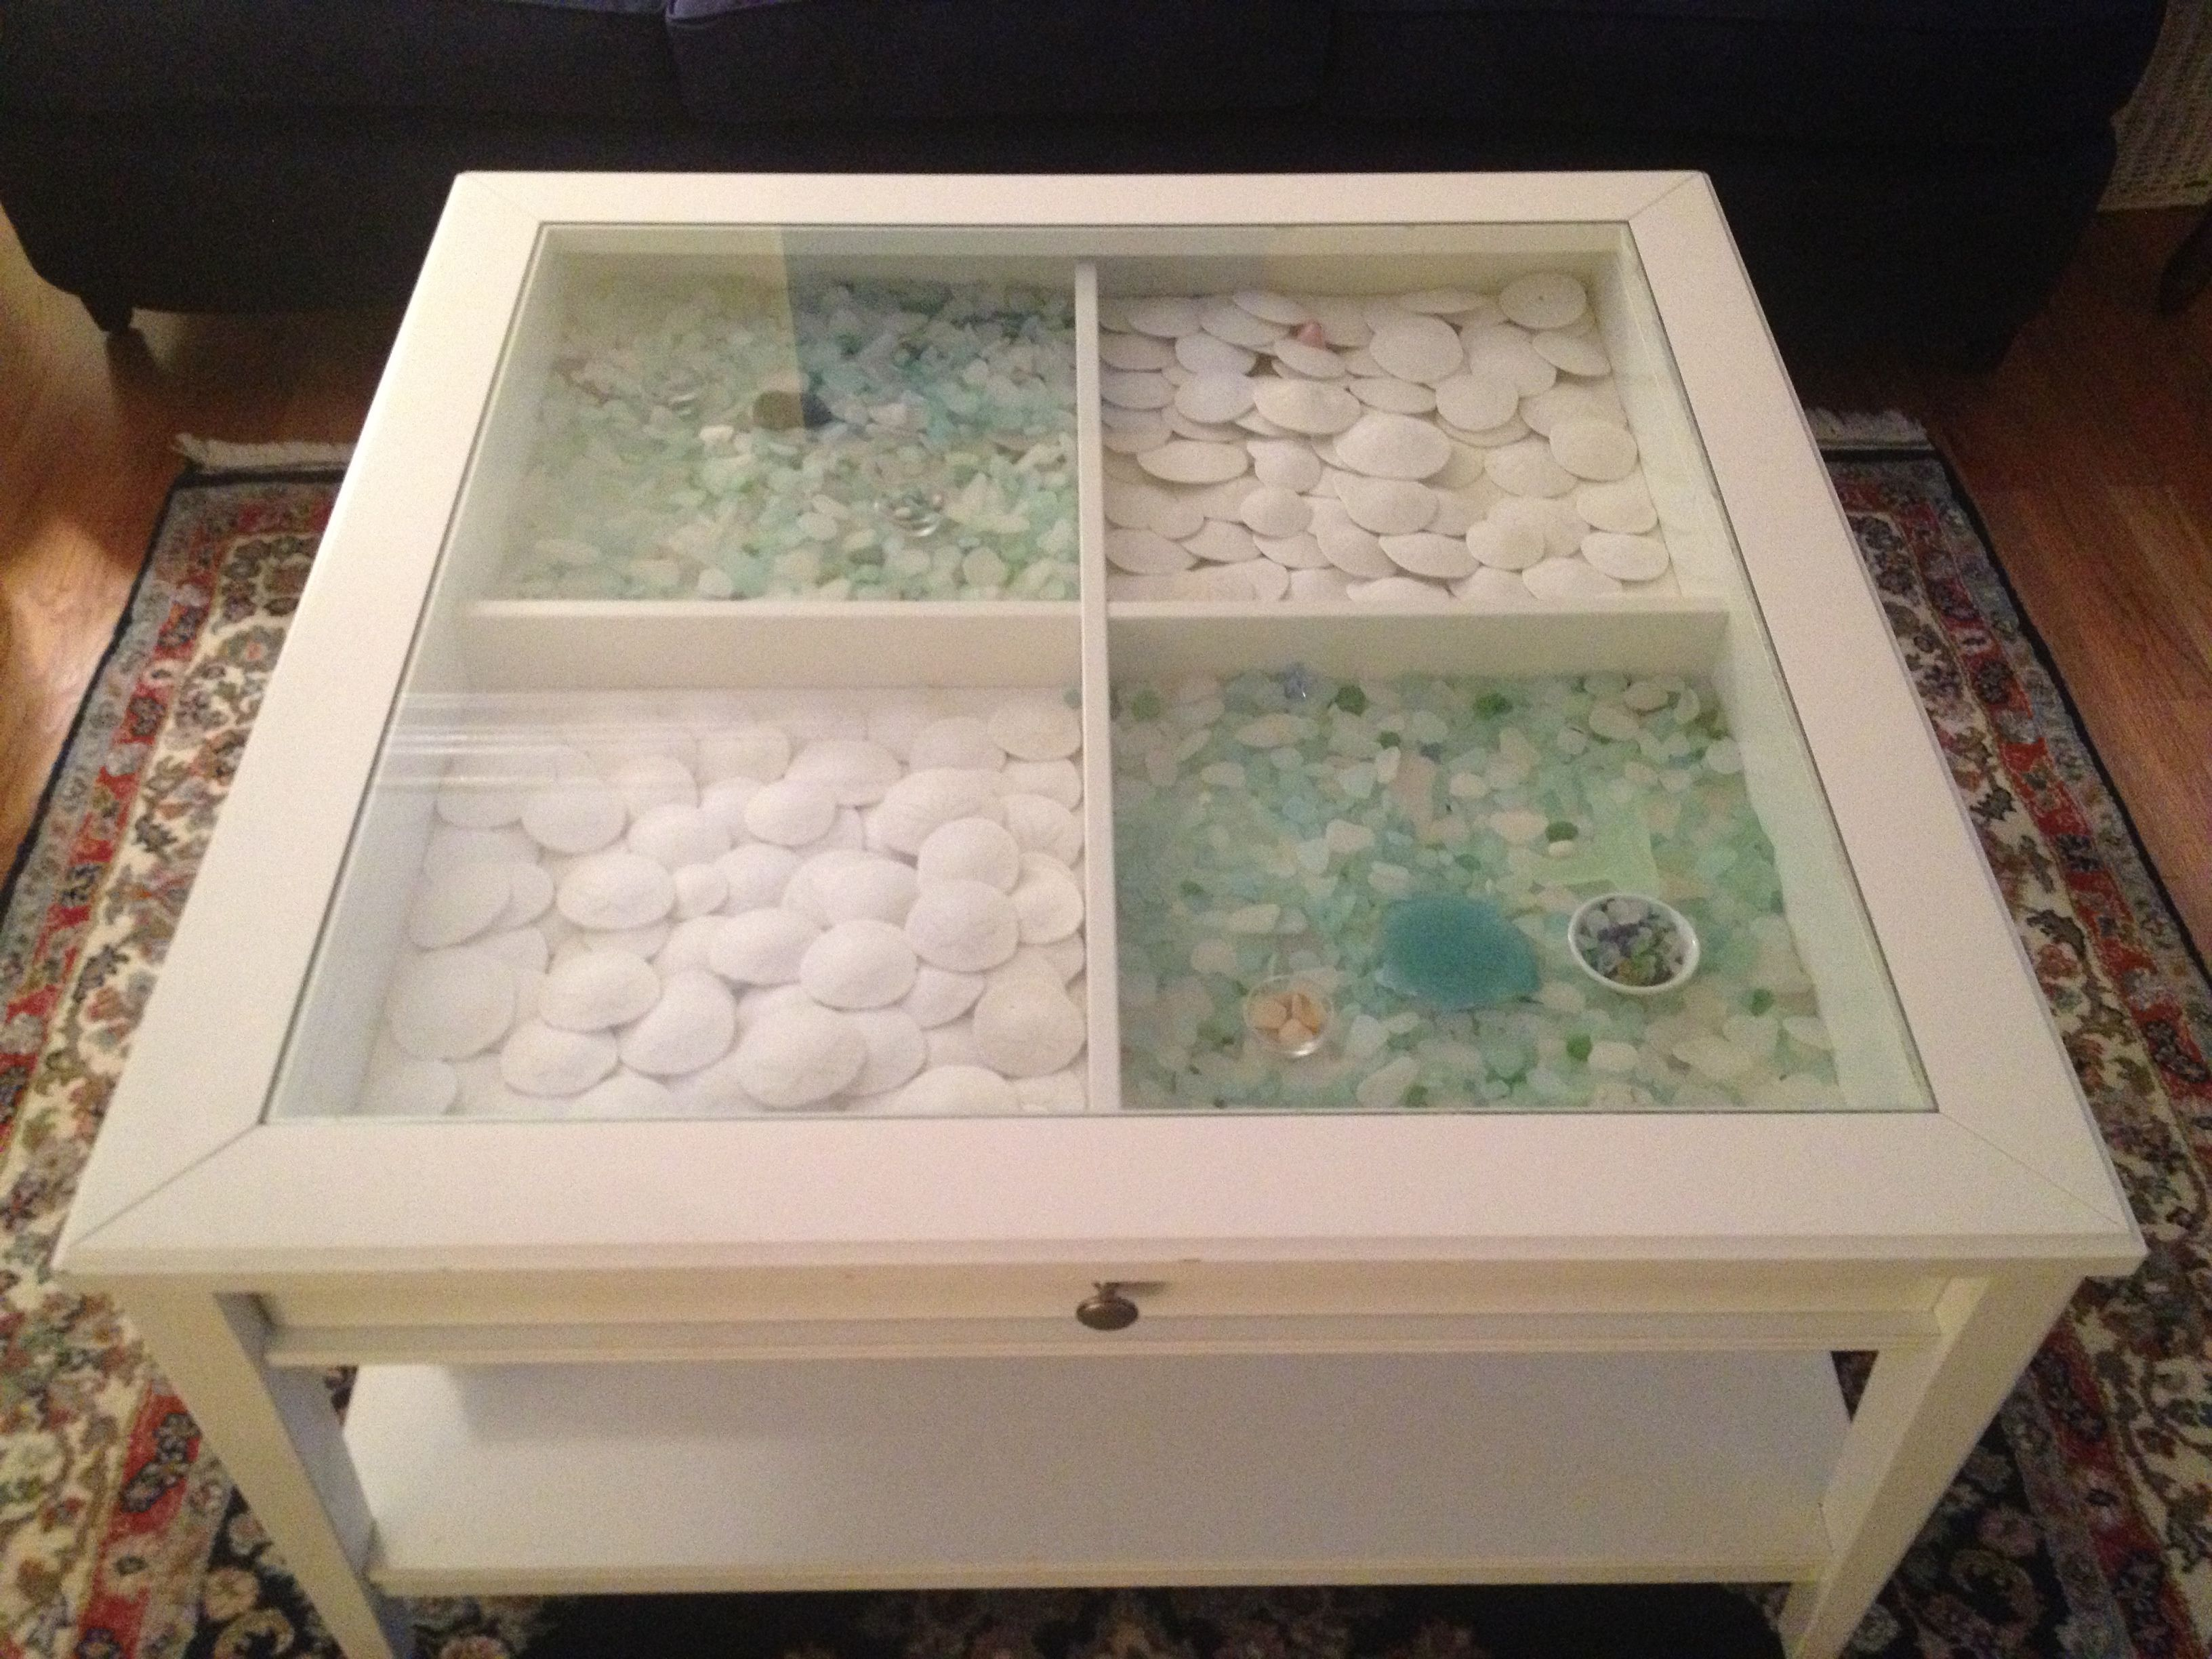 Glass Coffee Tables Commonly Found In The Home Shadow Box